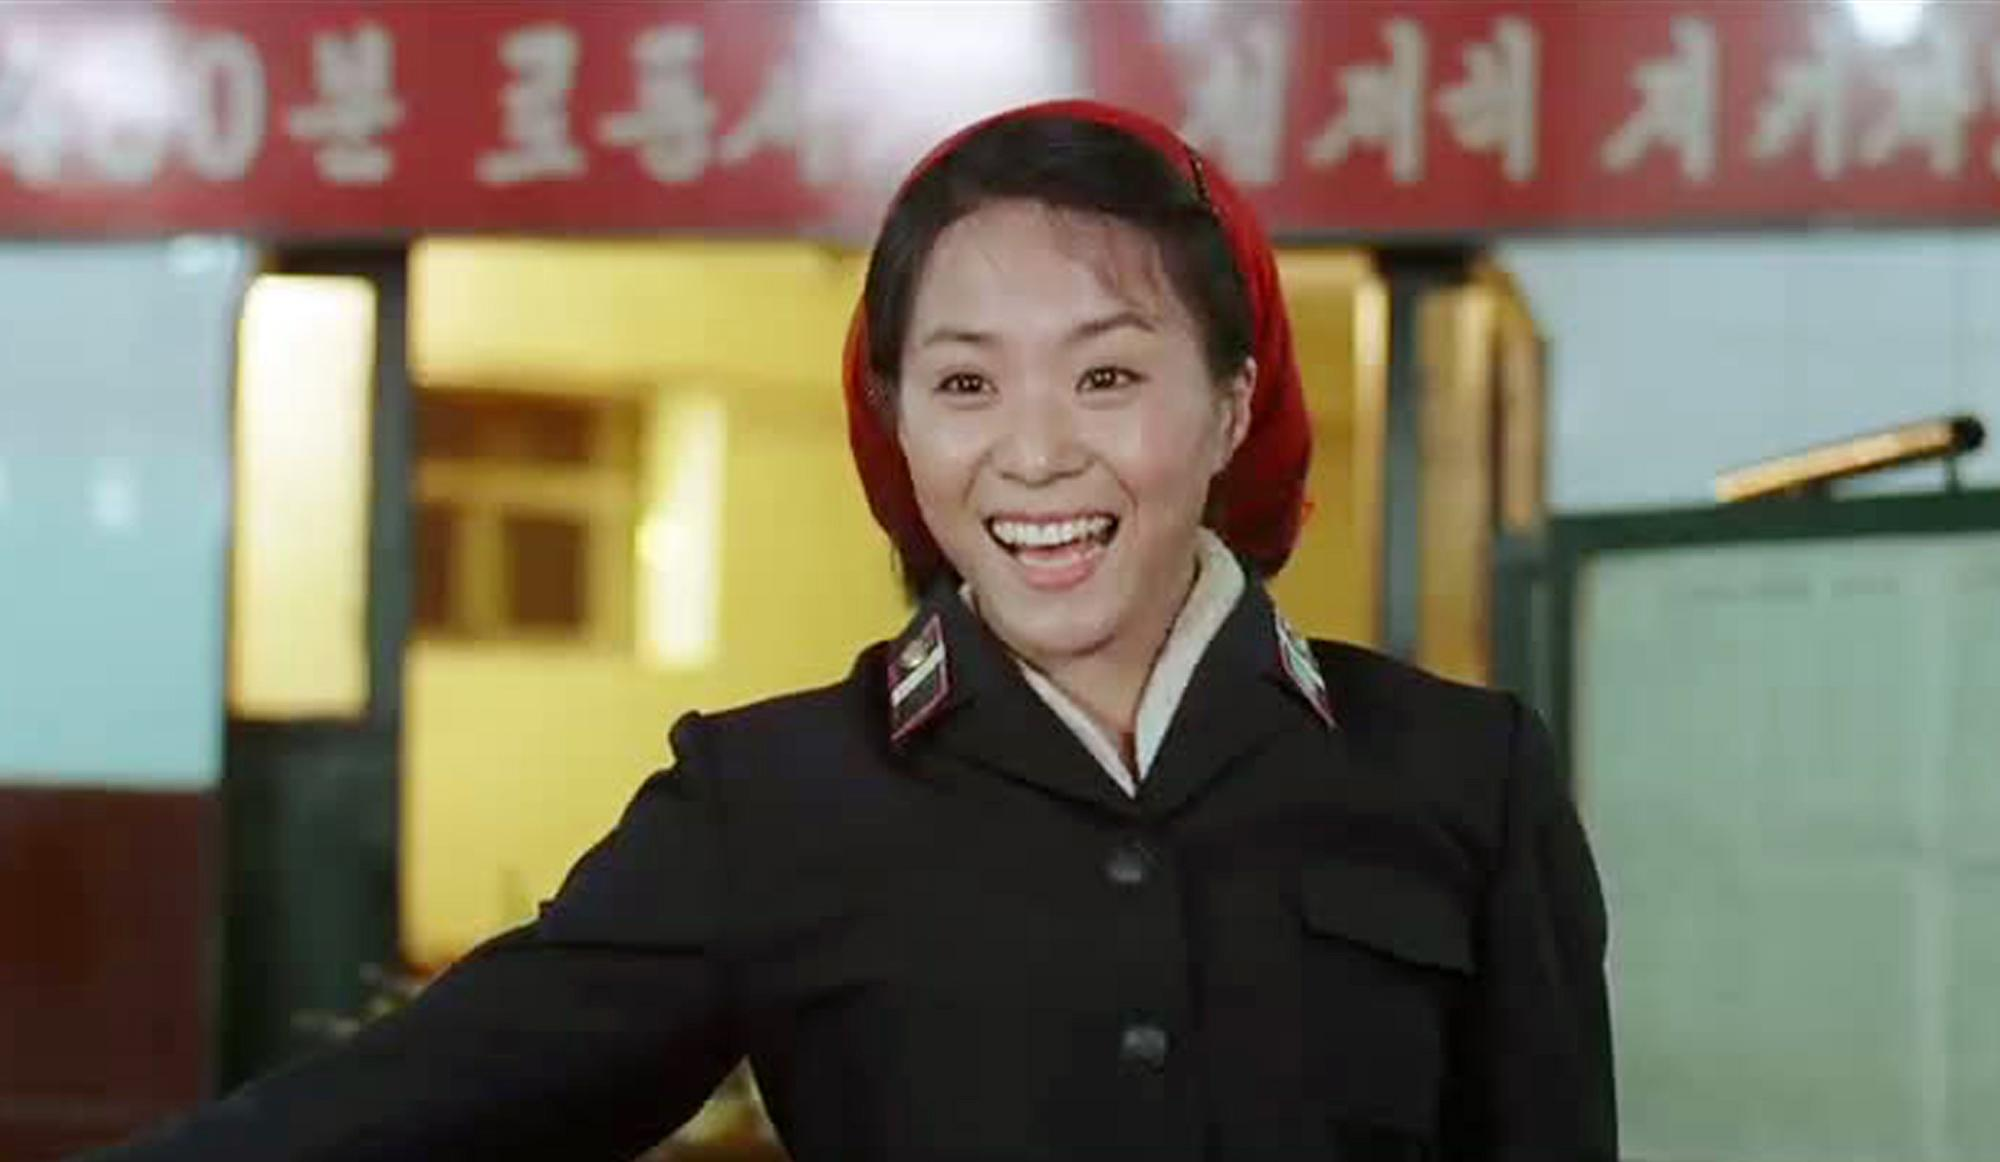 """FILE - In this file image made out of film """"Comrade Kim Goes Flying"""" released by Another Dimension of An Idea/Koryo Group, Comrade Kim Yong Mi played by Han Jong Sim acknowledges applause from her comrades for her acrobatic performance. An international film festival opens Thursday, Sept. 20, 2012 in the unlikeliest of places: North Korea. This year's festival includes movies from Britain, Germany and elsewhere. But not America. Festivalgoers will get to see two feature films in North Korea but edited overseas: the romantic comedy """"Comrade Kim Goes Flying,"""" a joint North Korean-European production, and """"Meet in Pyongyang,"""" made in conjunction with a Chinese film studio. (AP Photo/Courtesy of Another Dimension of An Idea/Koryo Group) EDITORIAL USE ONLY"""